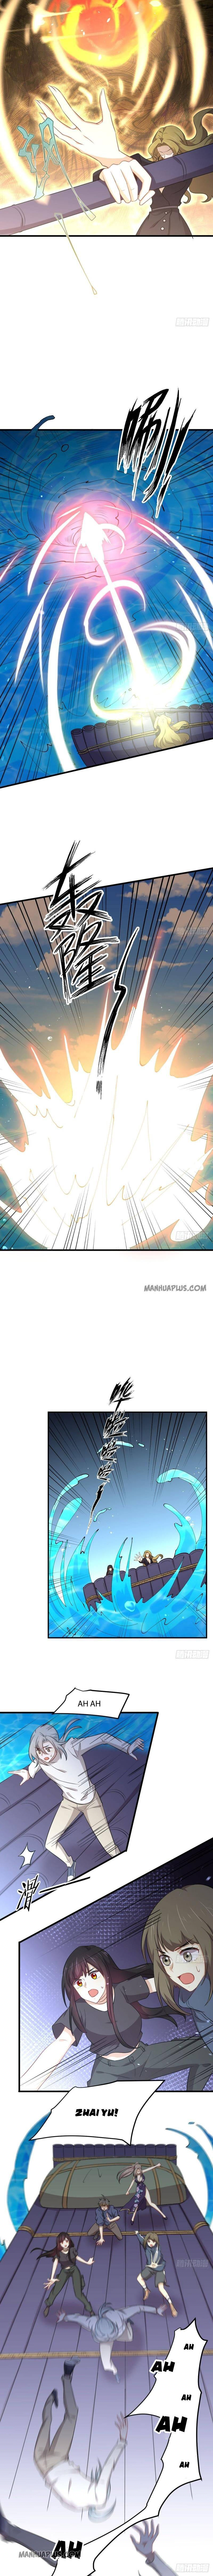 Immortal Swordsman In The Reverse World - chapter 199 - #3